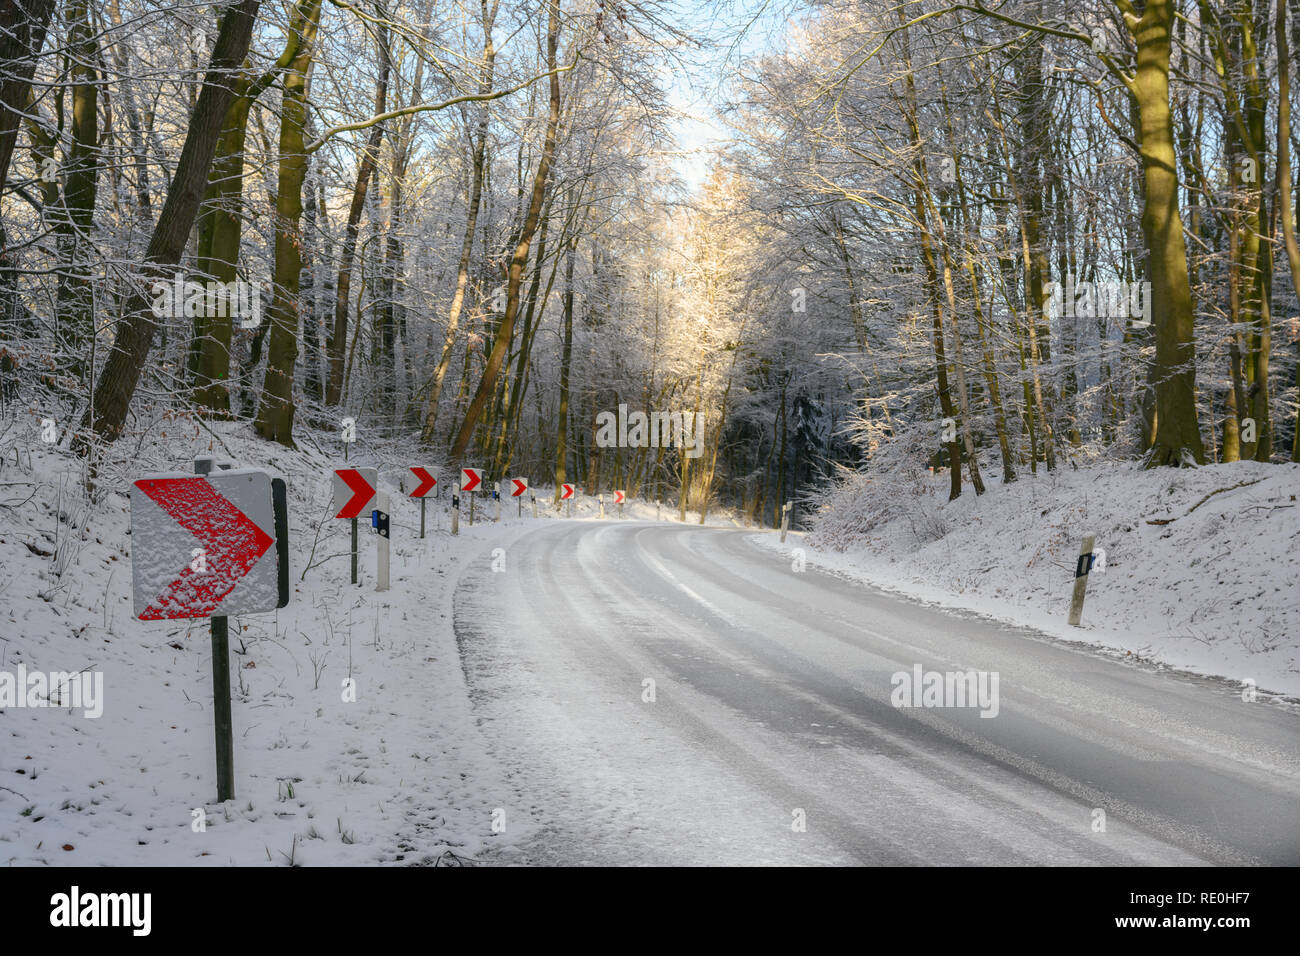 traffic signs with red arrows on a dangerous curve on an snowy country road through the winter forest, safety driving concept, copy space - Stock Image